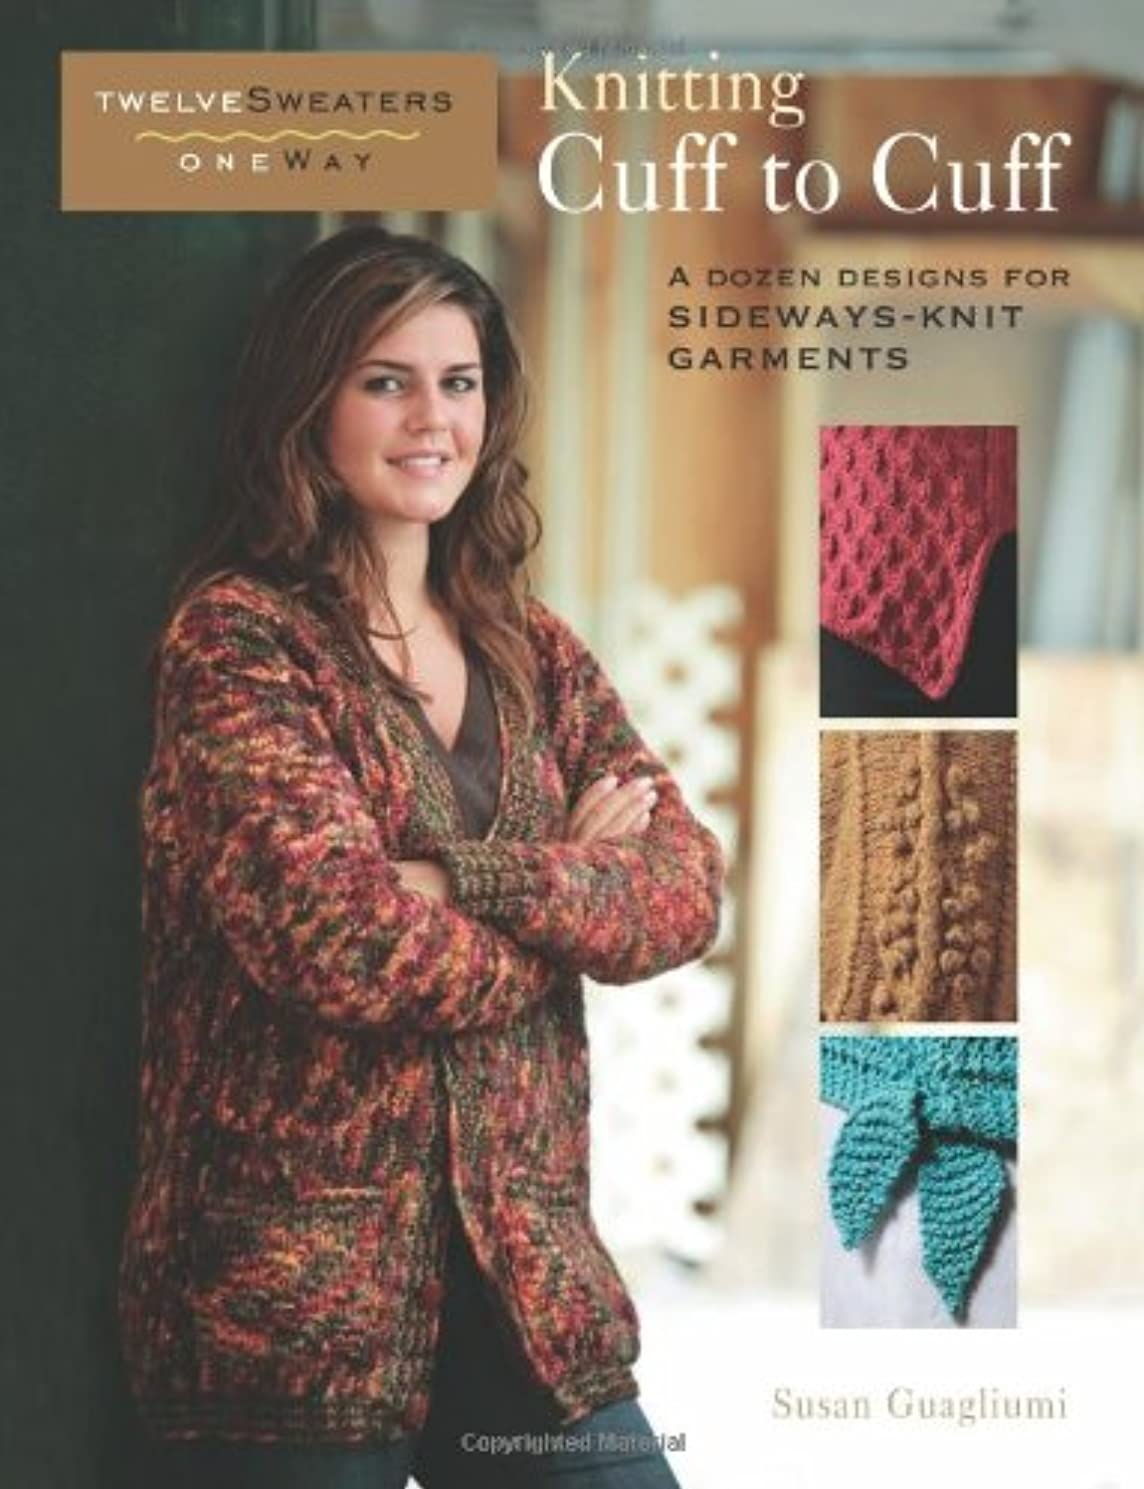 Knitting Cuff to Cuff: A Dozen Designs for Sideways-Knit Garments (Twelve Sweaters One Way)